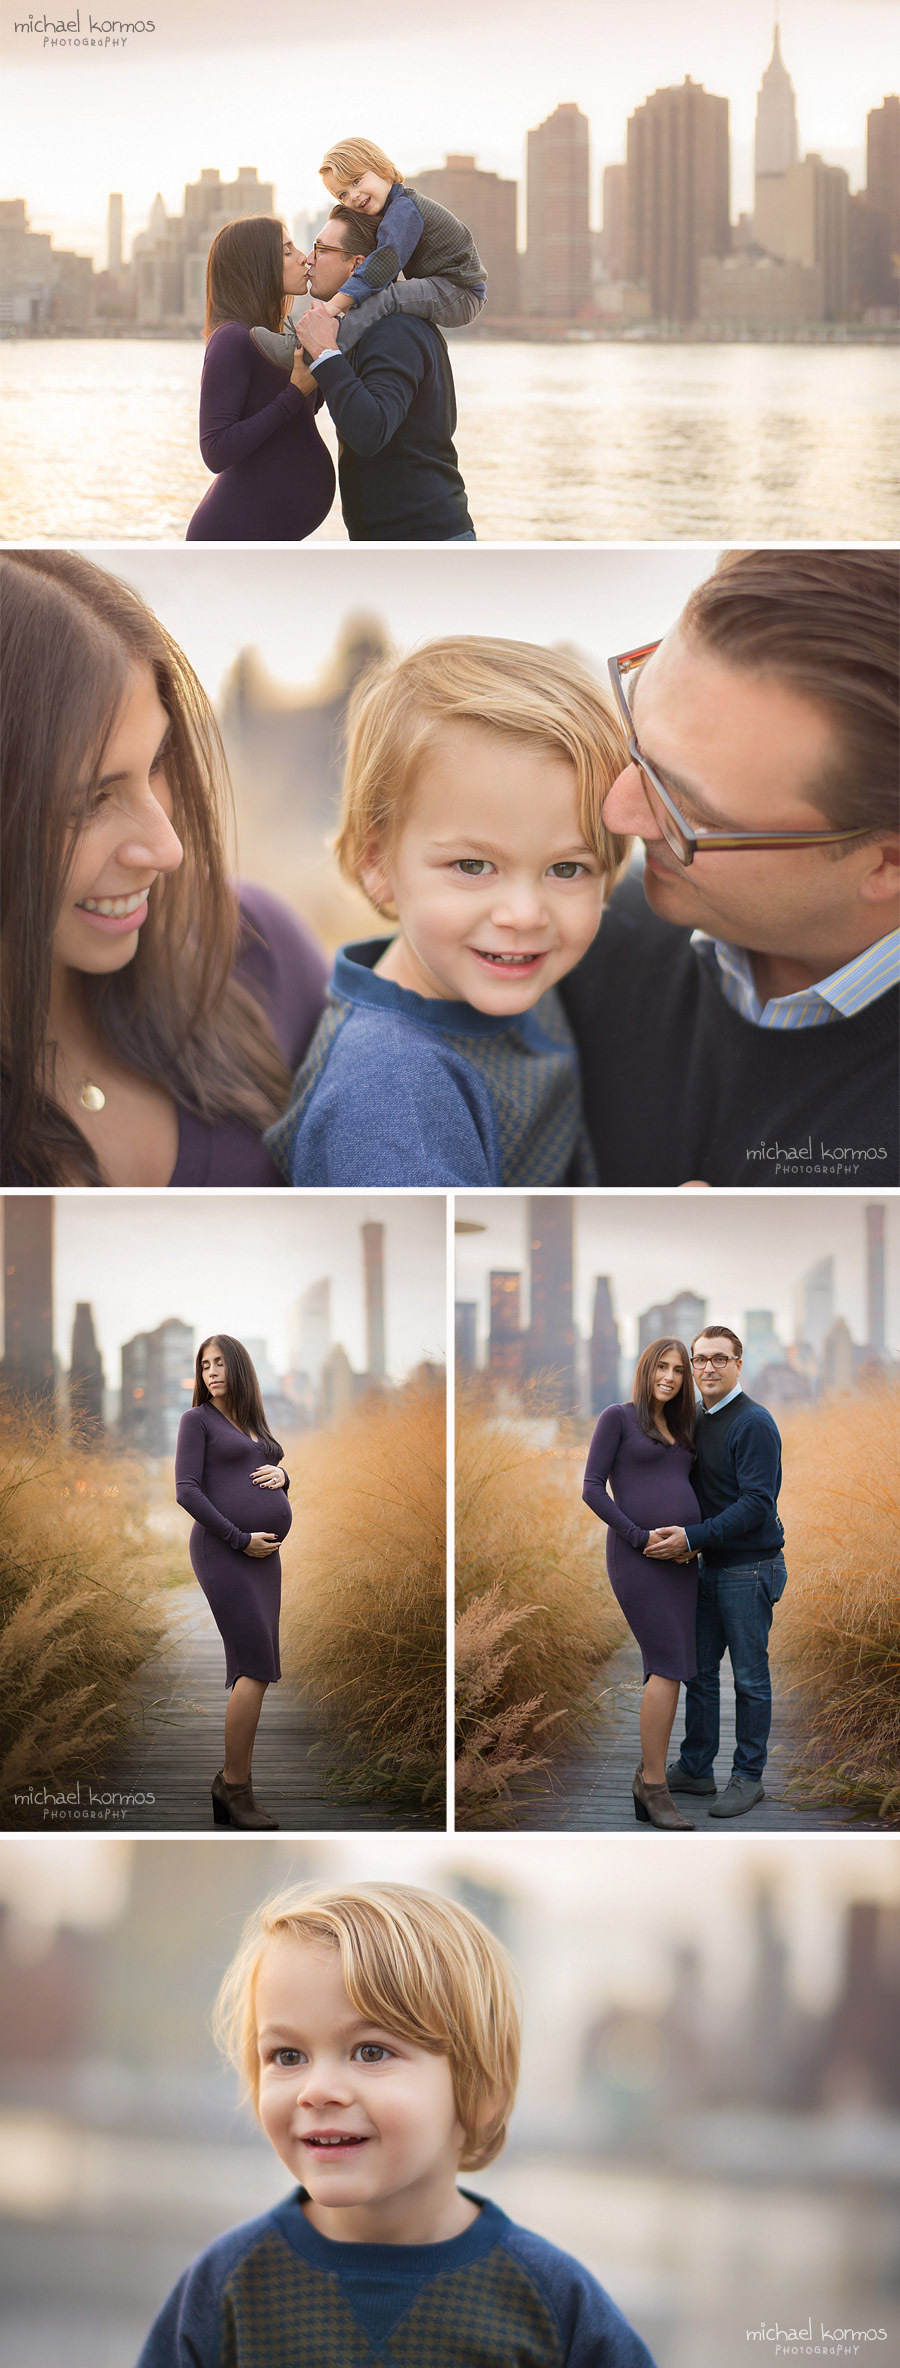 Outdoors Maternity Photography NYC